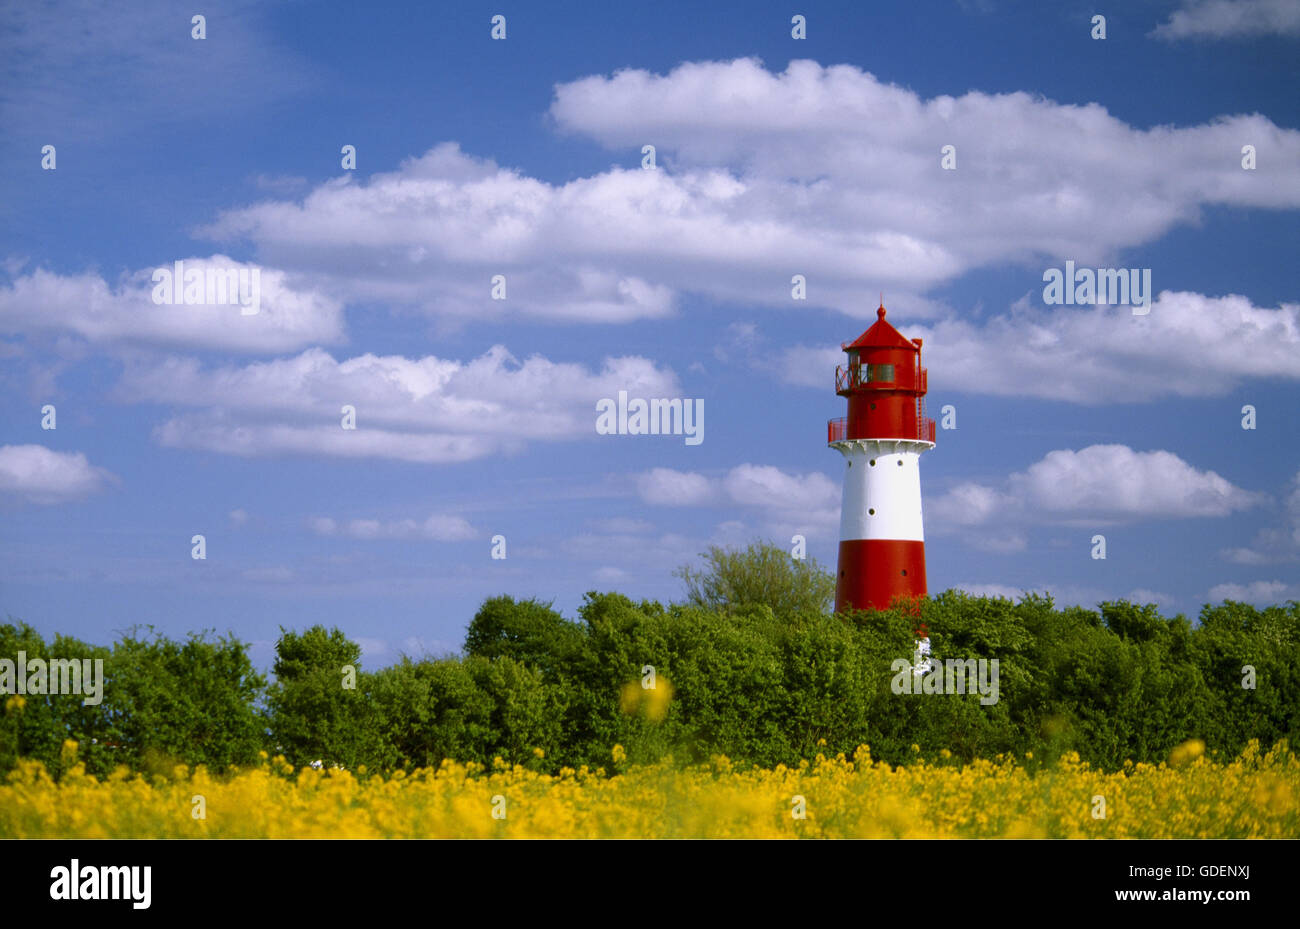 Lighthouse at Pommerby, Angeln, Schleswig-Holstein, Germany - Stock Image